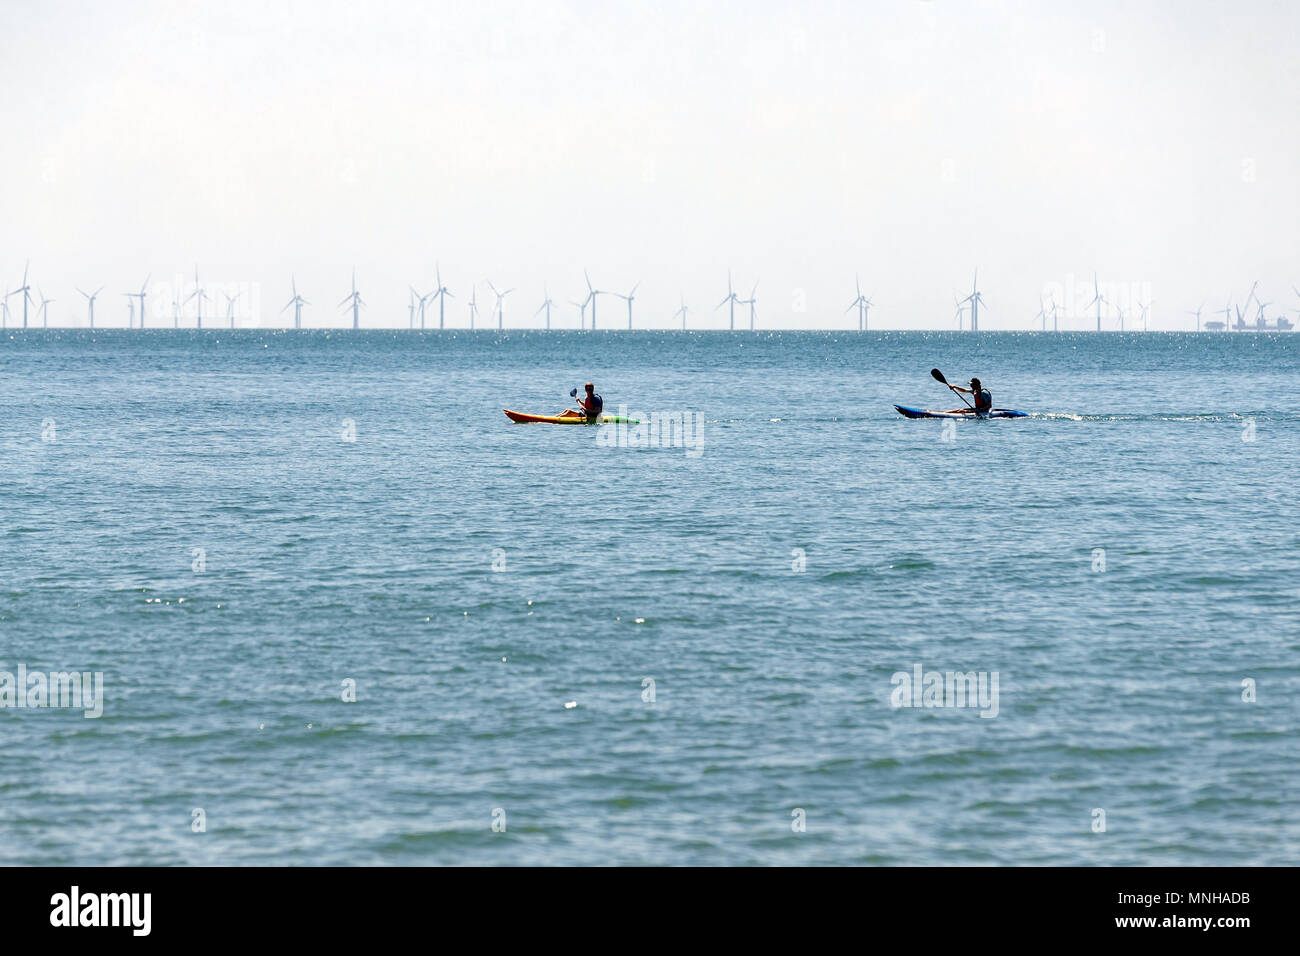 Two men with paddle boards in the sea. Paddleboards, paddleboarding, line of wind turbines. Brighton, East Sussex, UK. - Stock Image